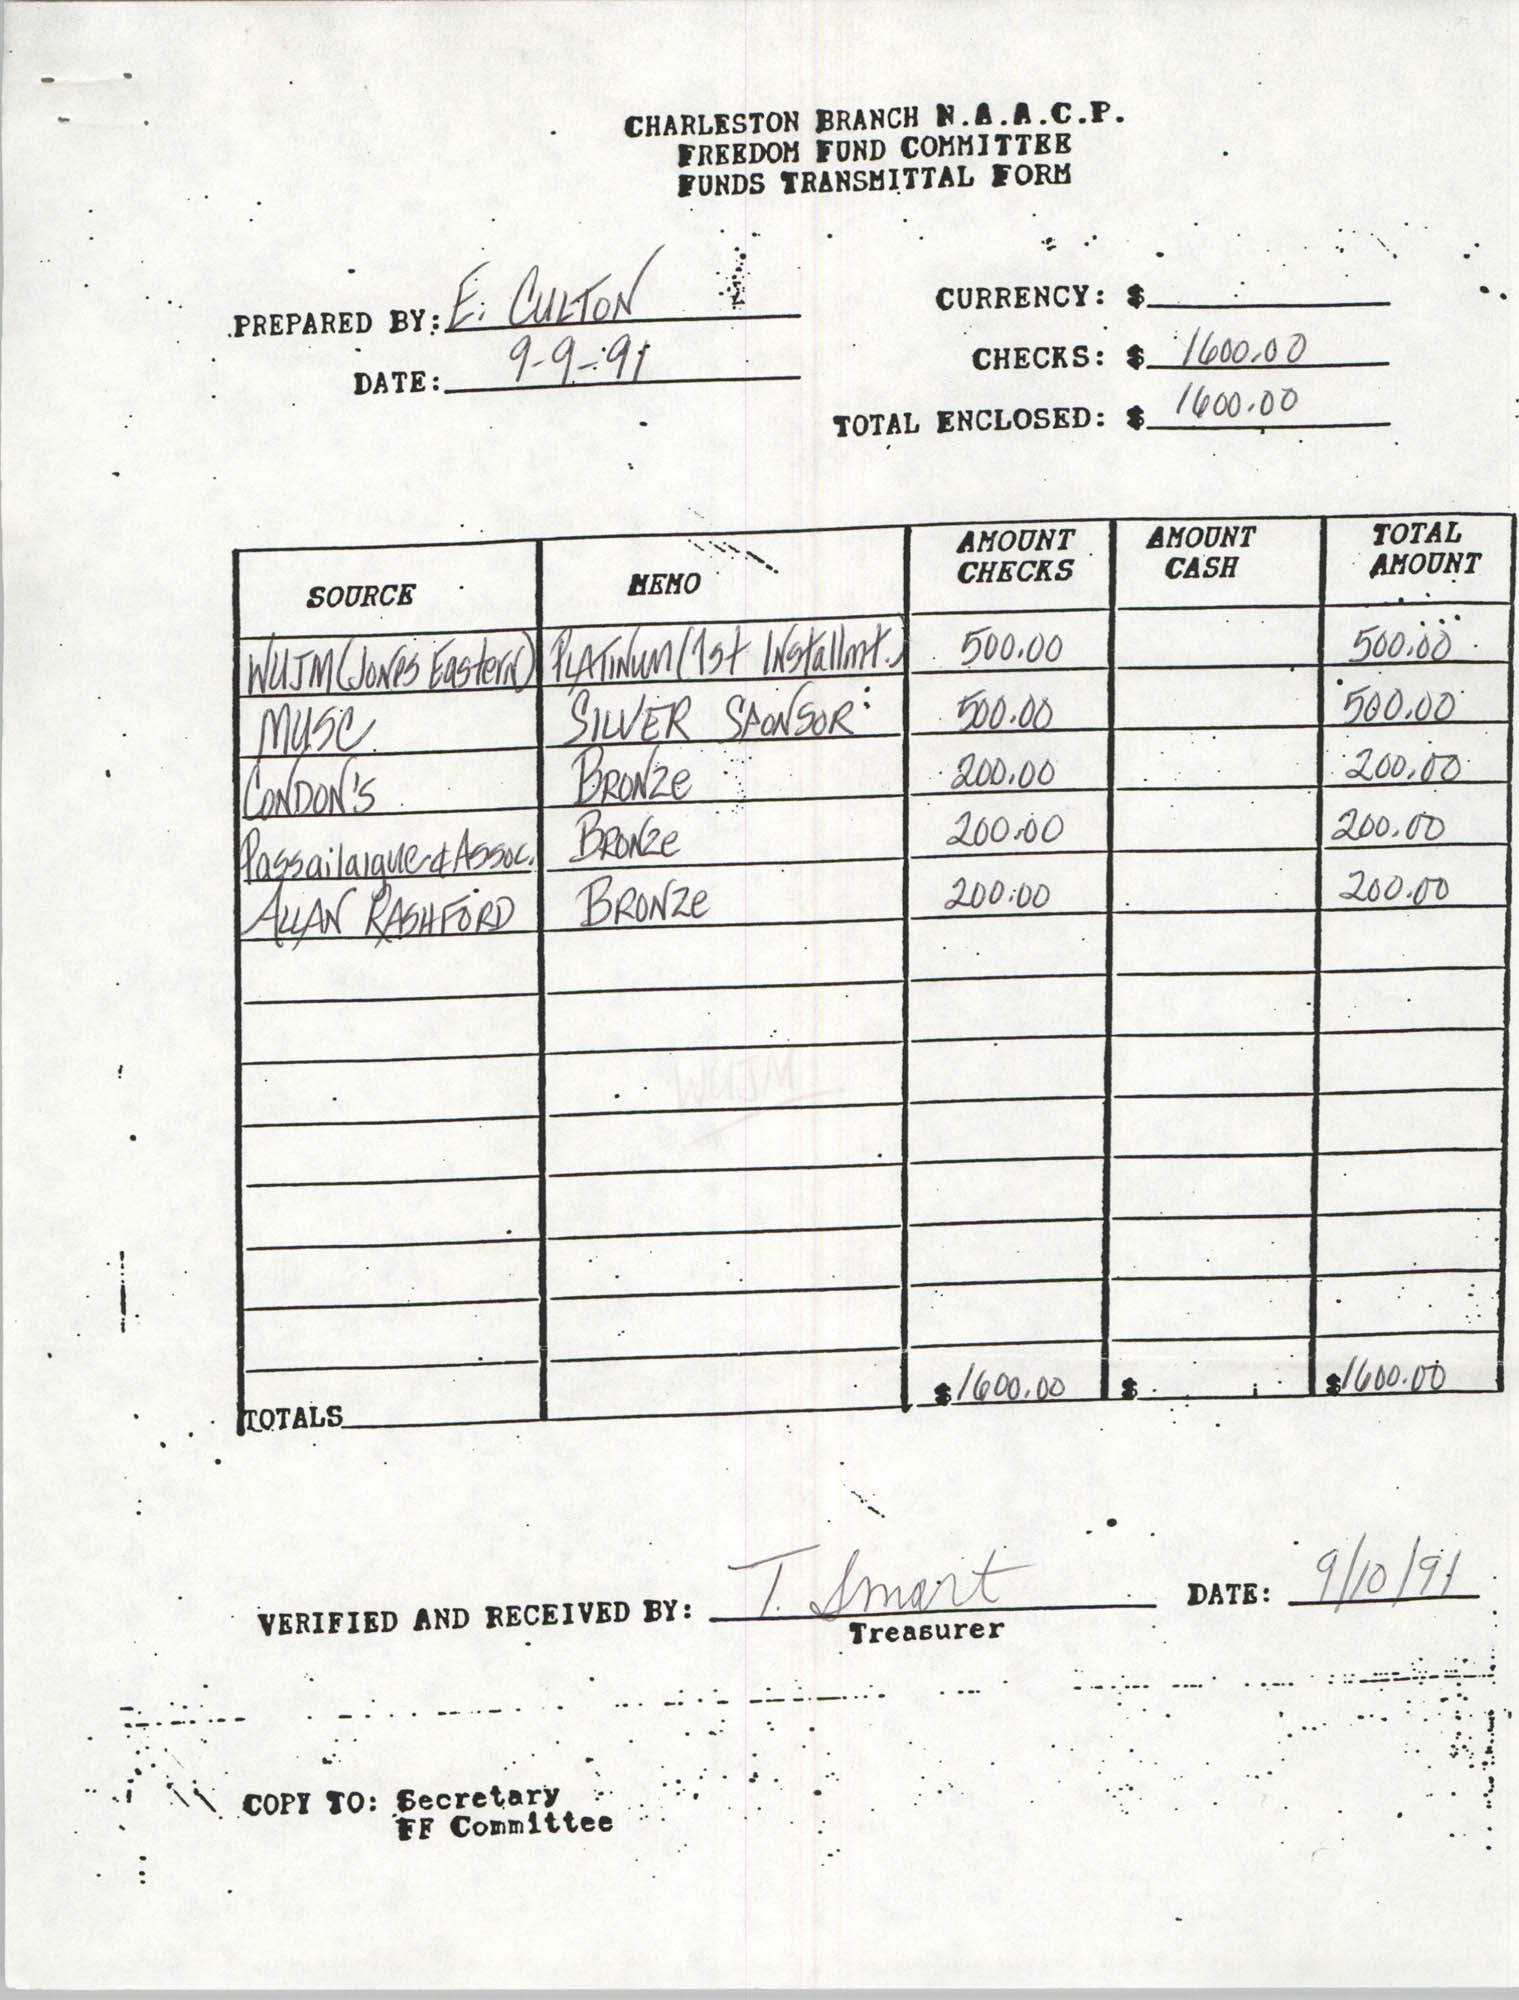 Charleston Branch of the NAACP Funds Transmittal Forms, September 1991, Page 17